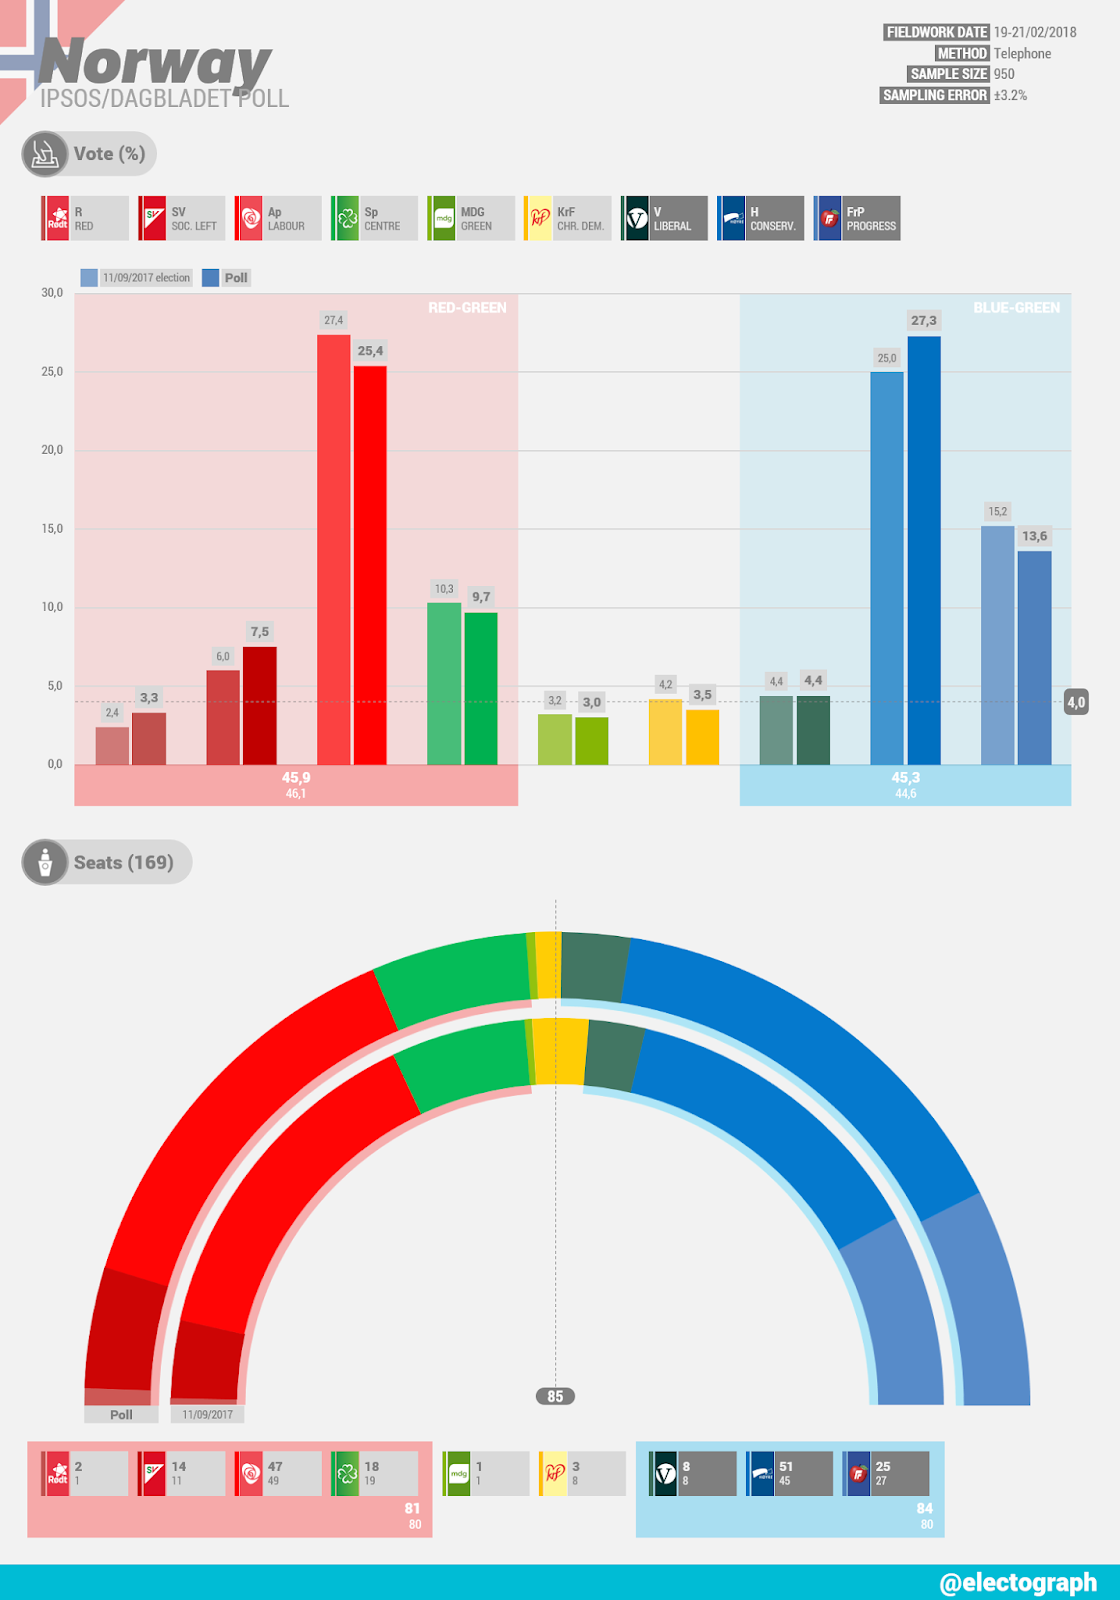 NORWAY Ipsos poll chart for Dagbladet, February 2018